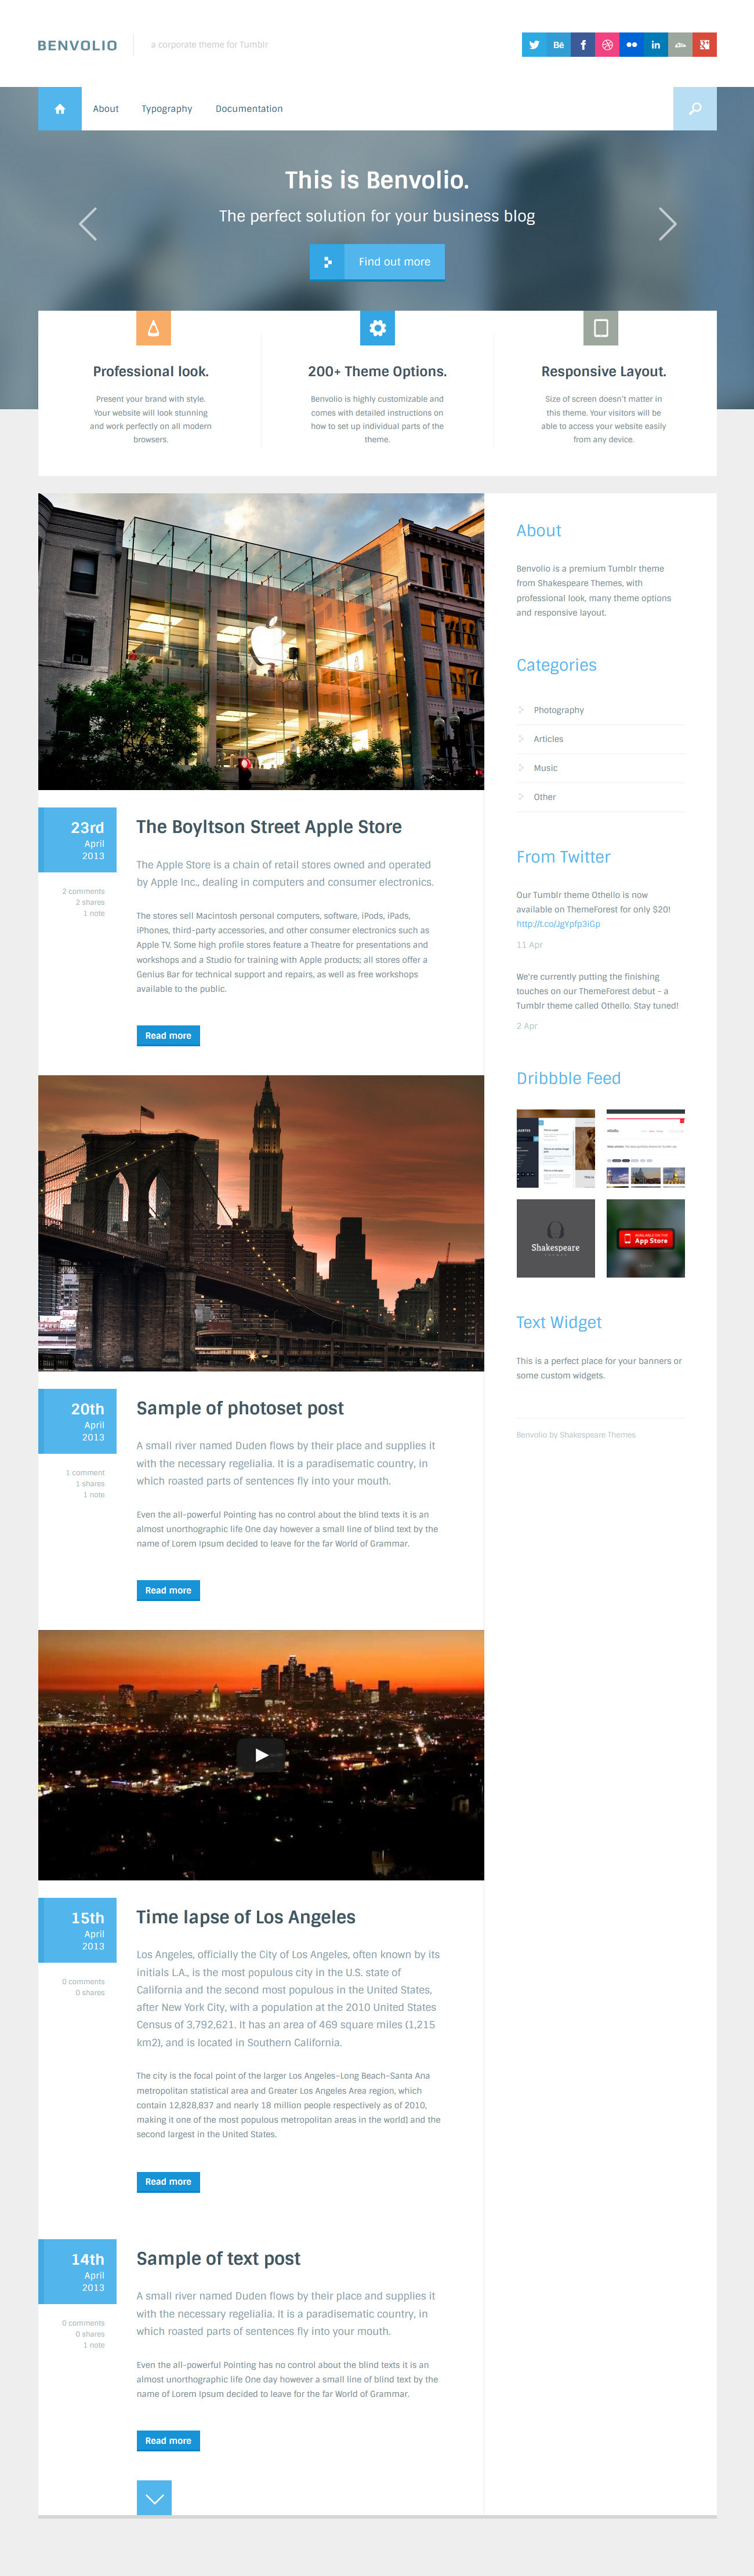 Benvolio - A Business Tumblr Theme